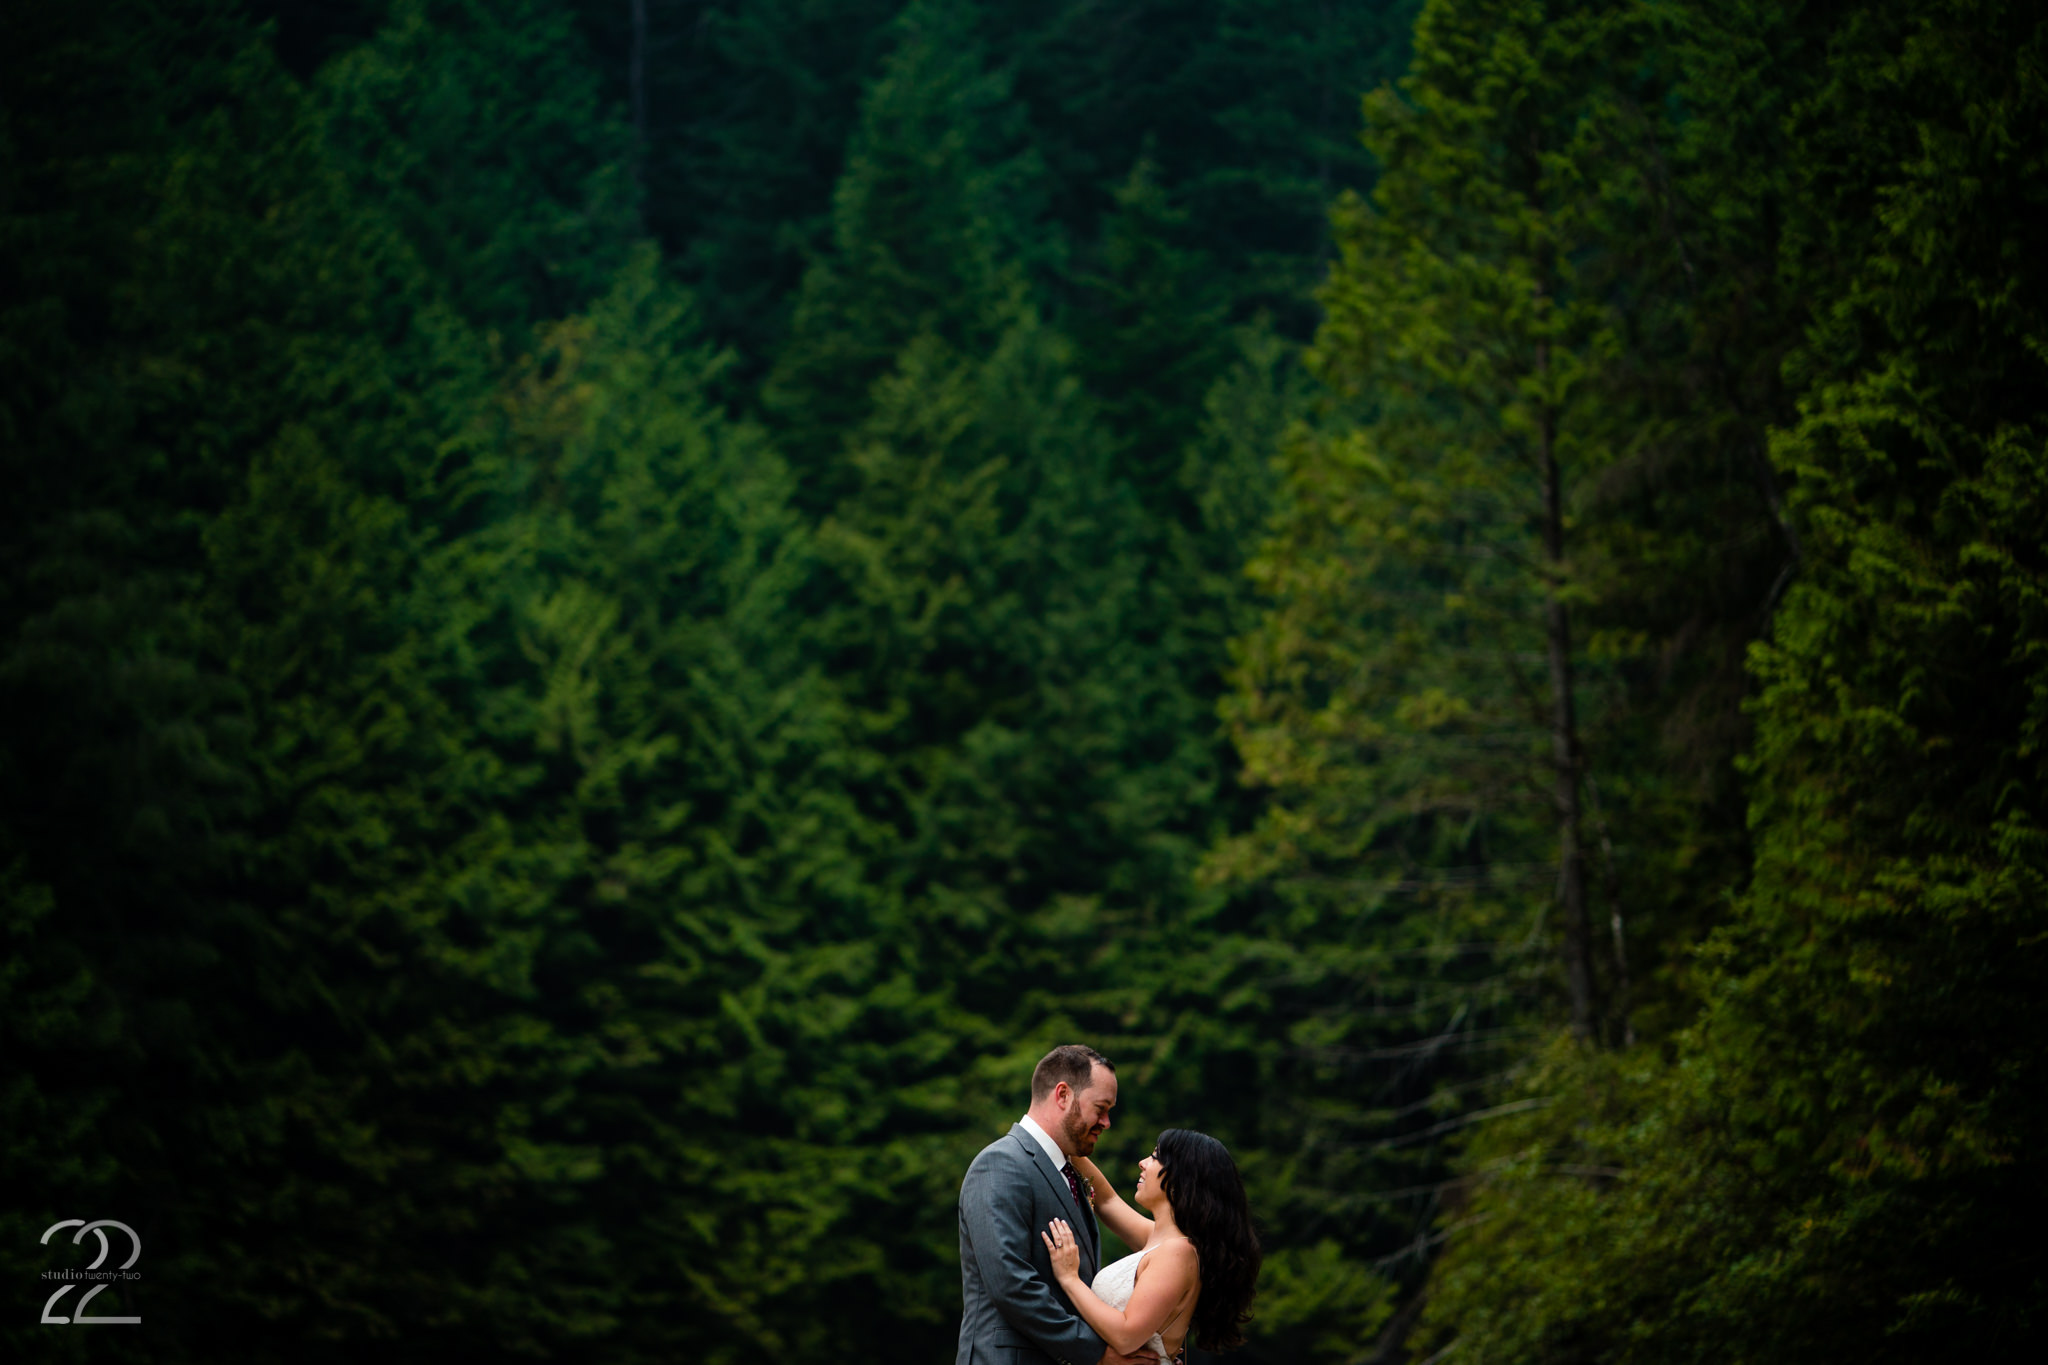 Studio 22 Photography - Vancouver Wedding Photographers